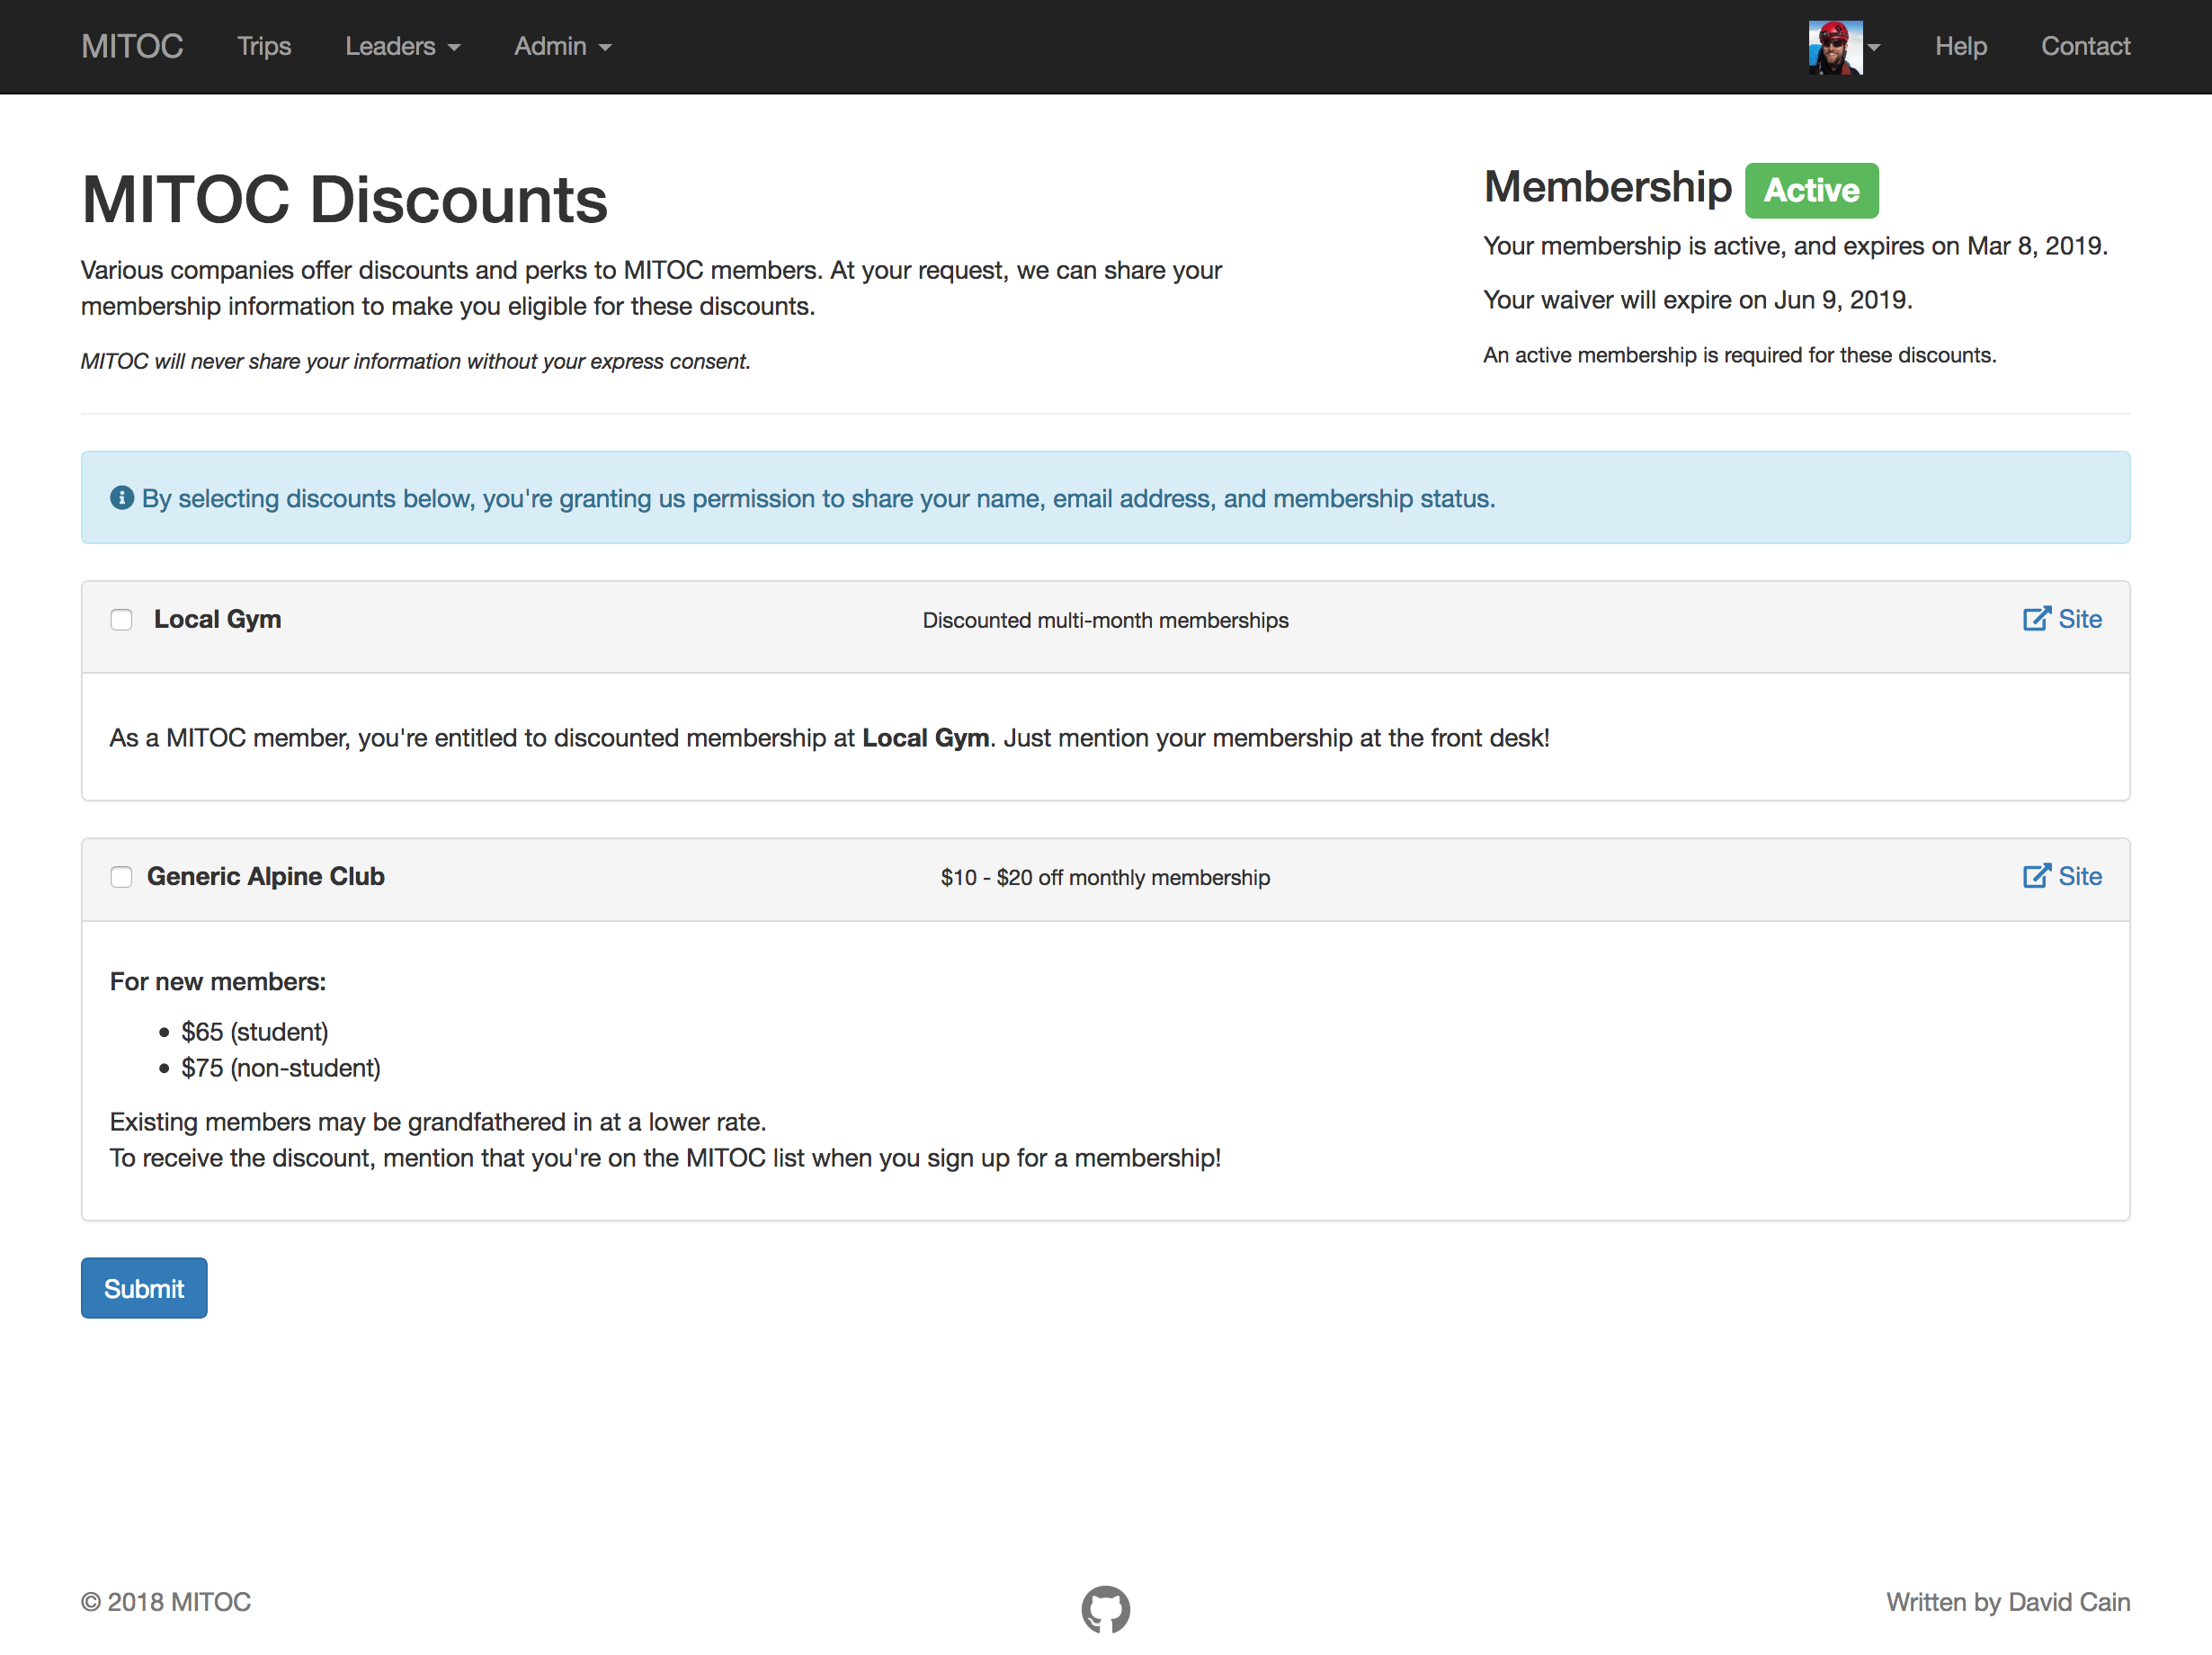 MITOC members can receive discounts